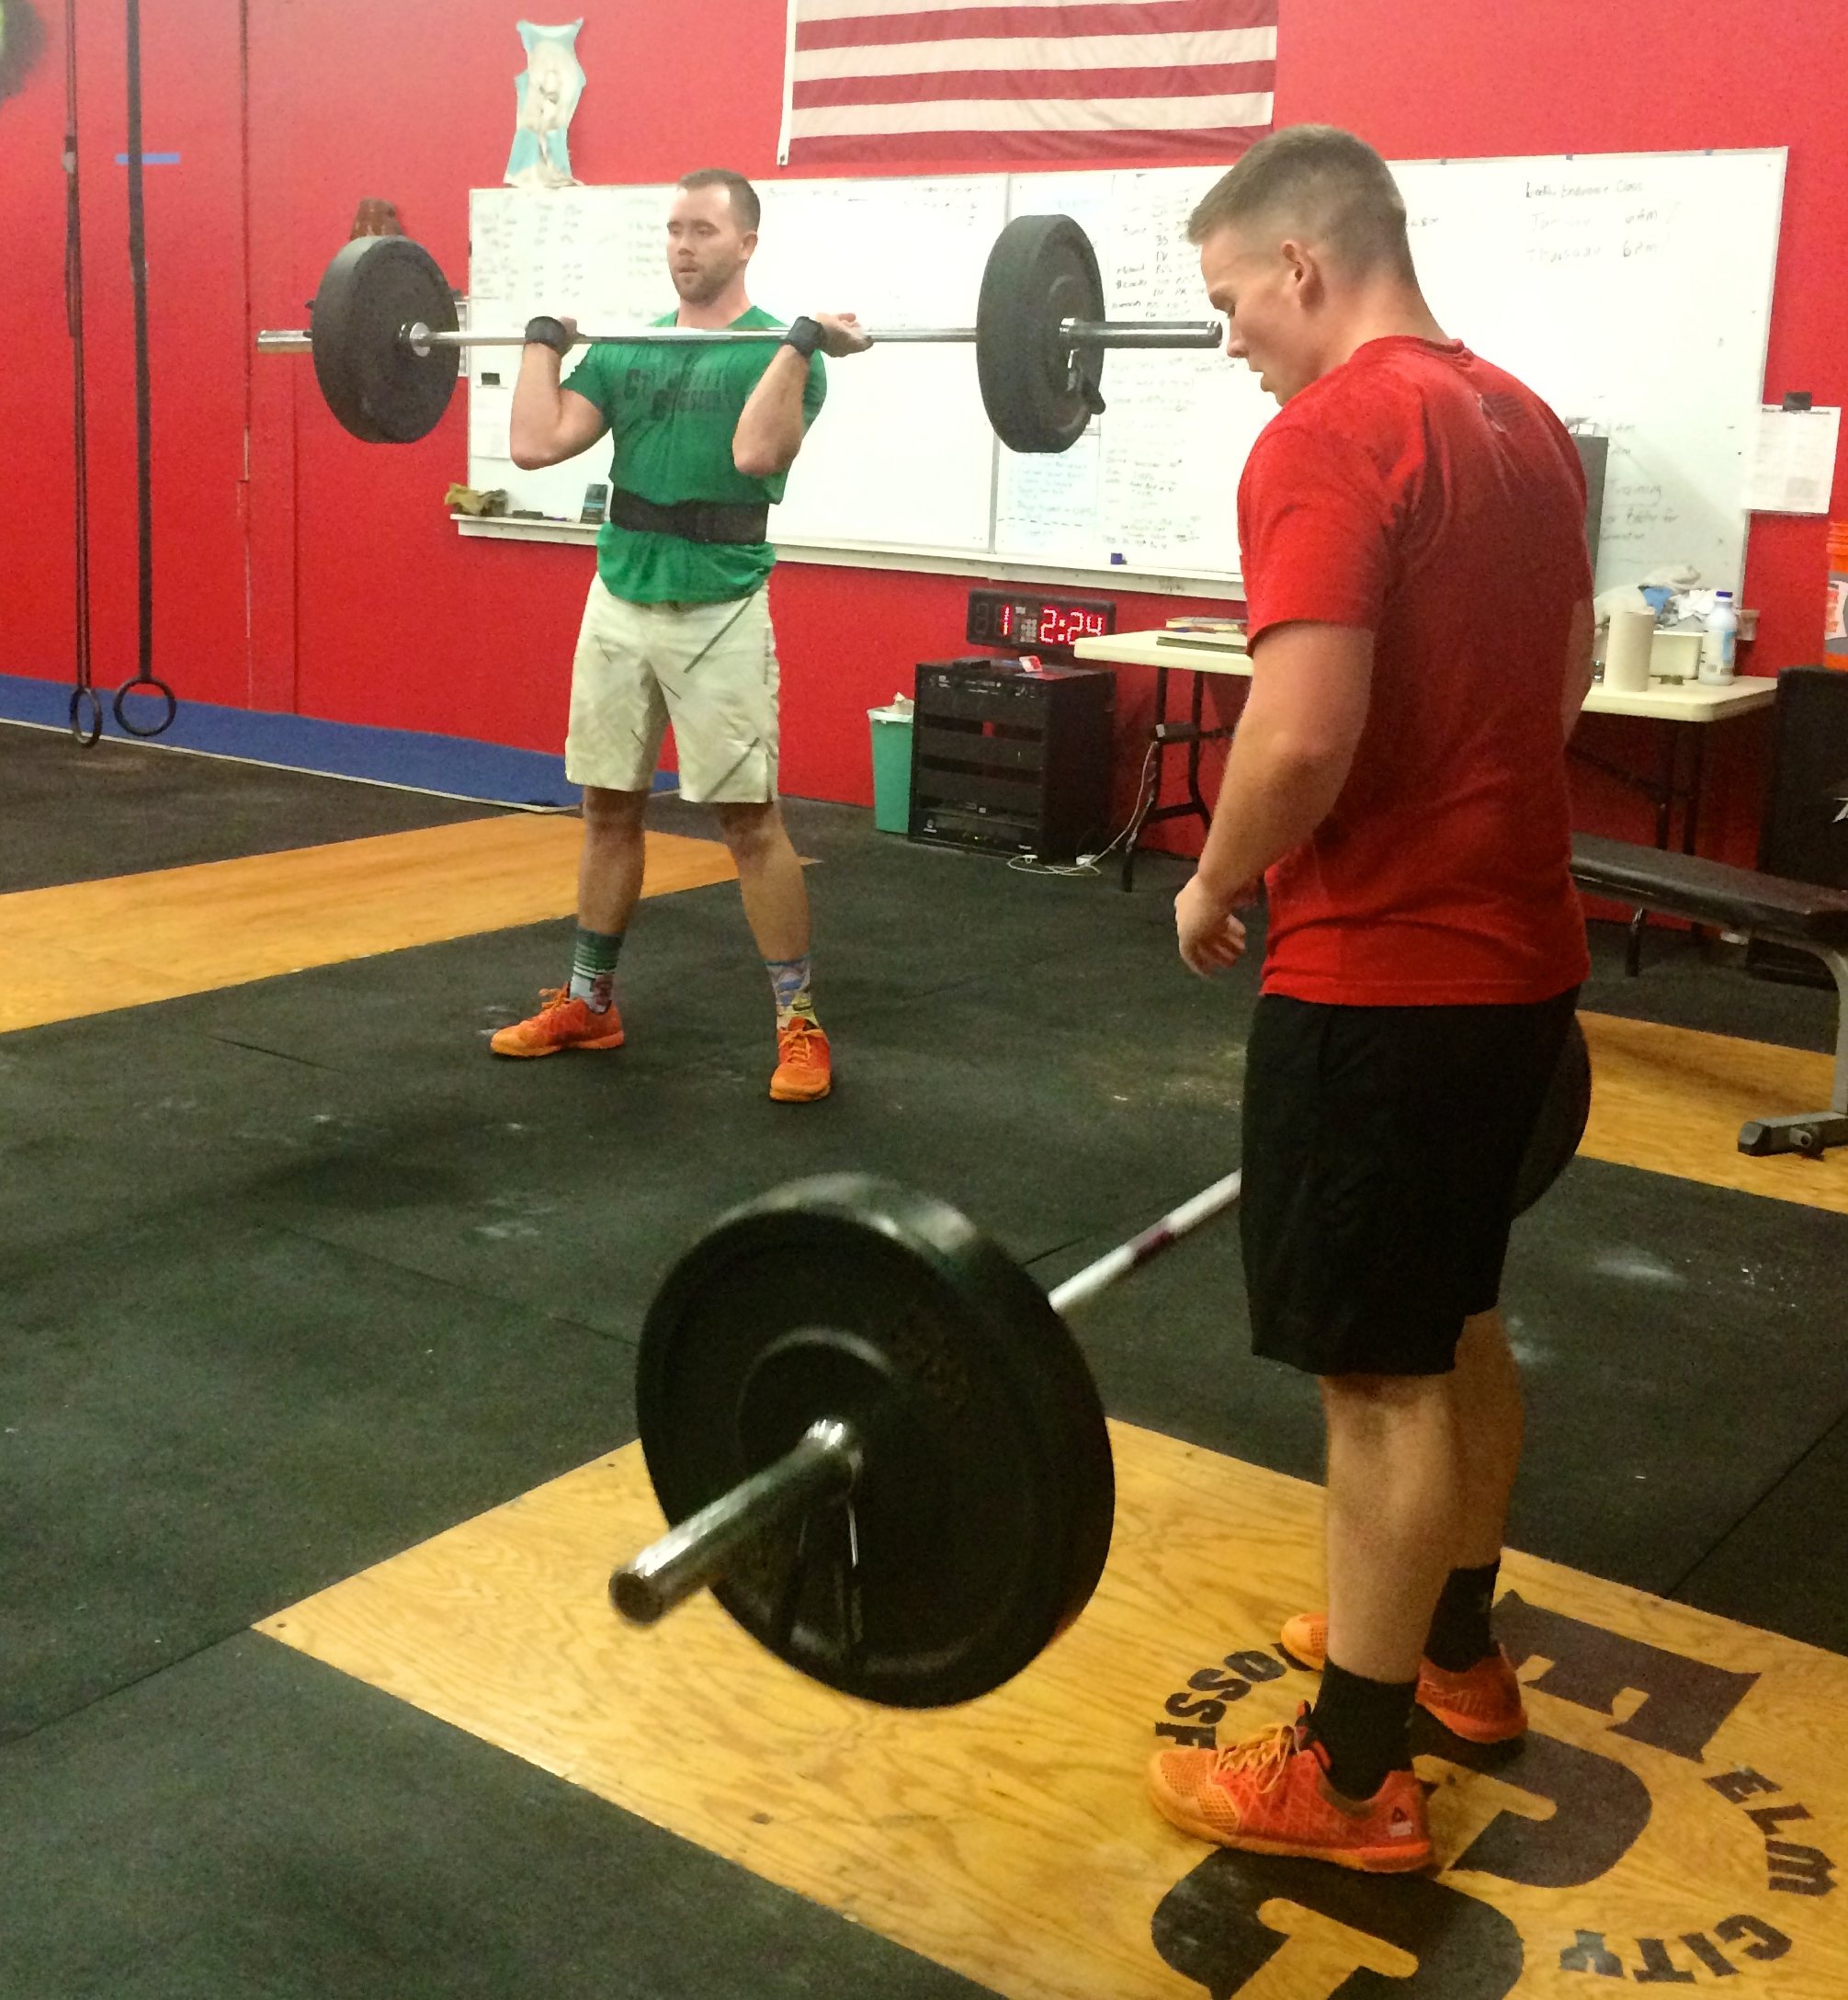 Zach 2 and Will making easy work of the cleans